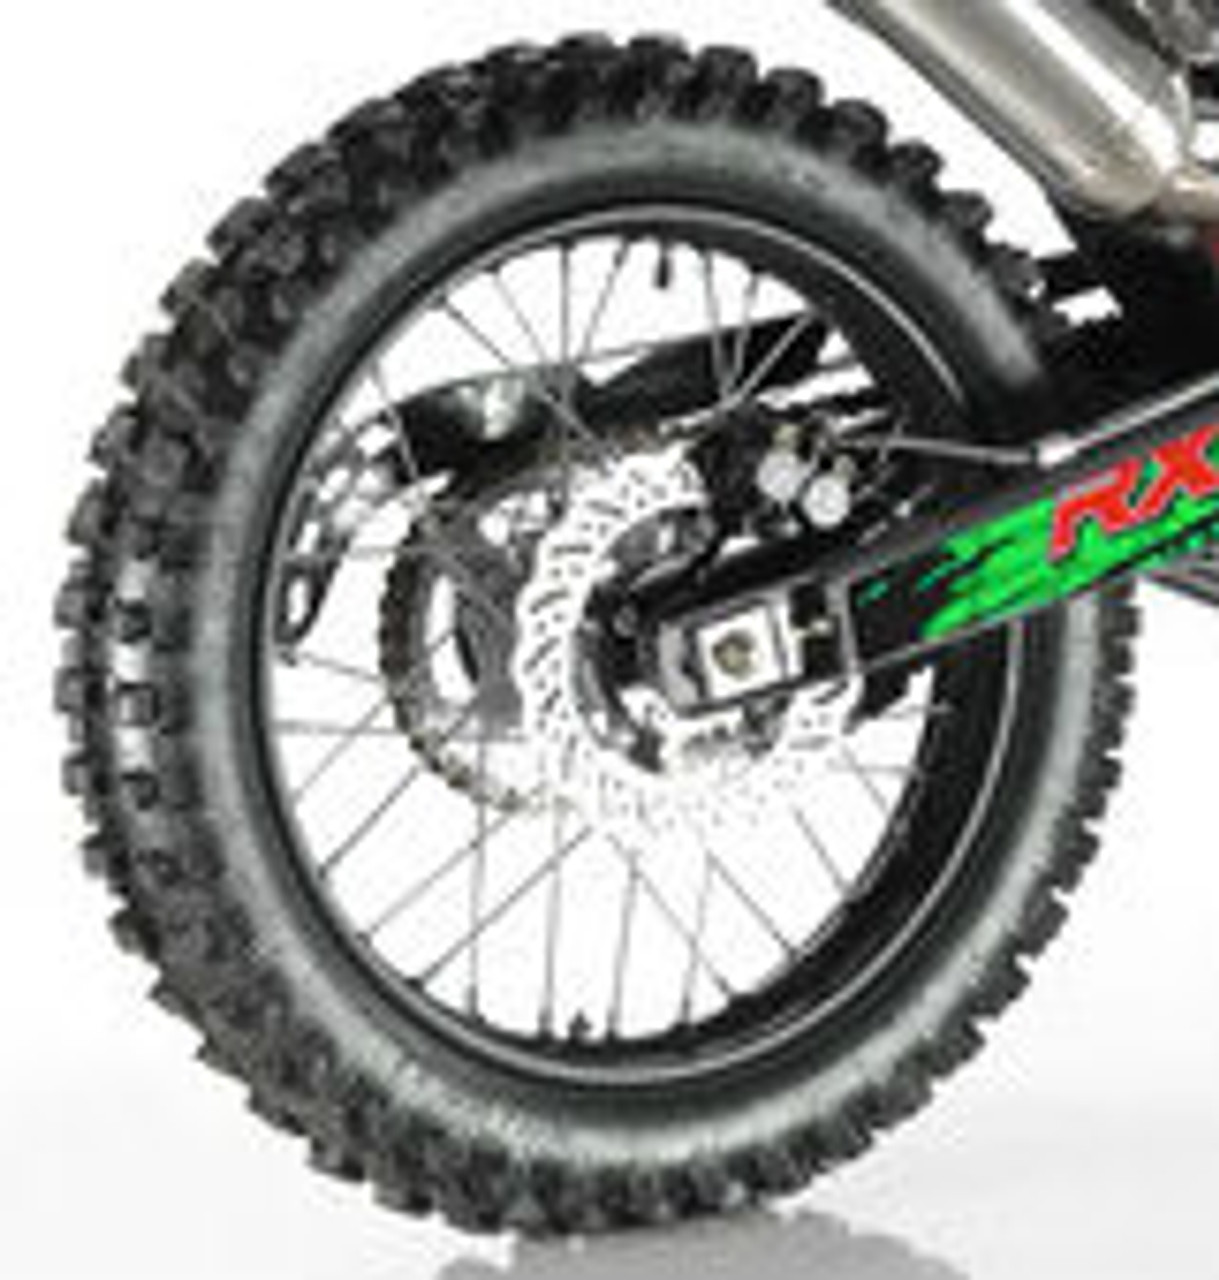 RK Racing Chain 1062-038RB Black Aluminum Rear Sprocket and 520XSO Chain 520 Race Conversion Kit